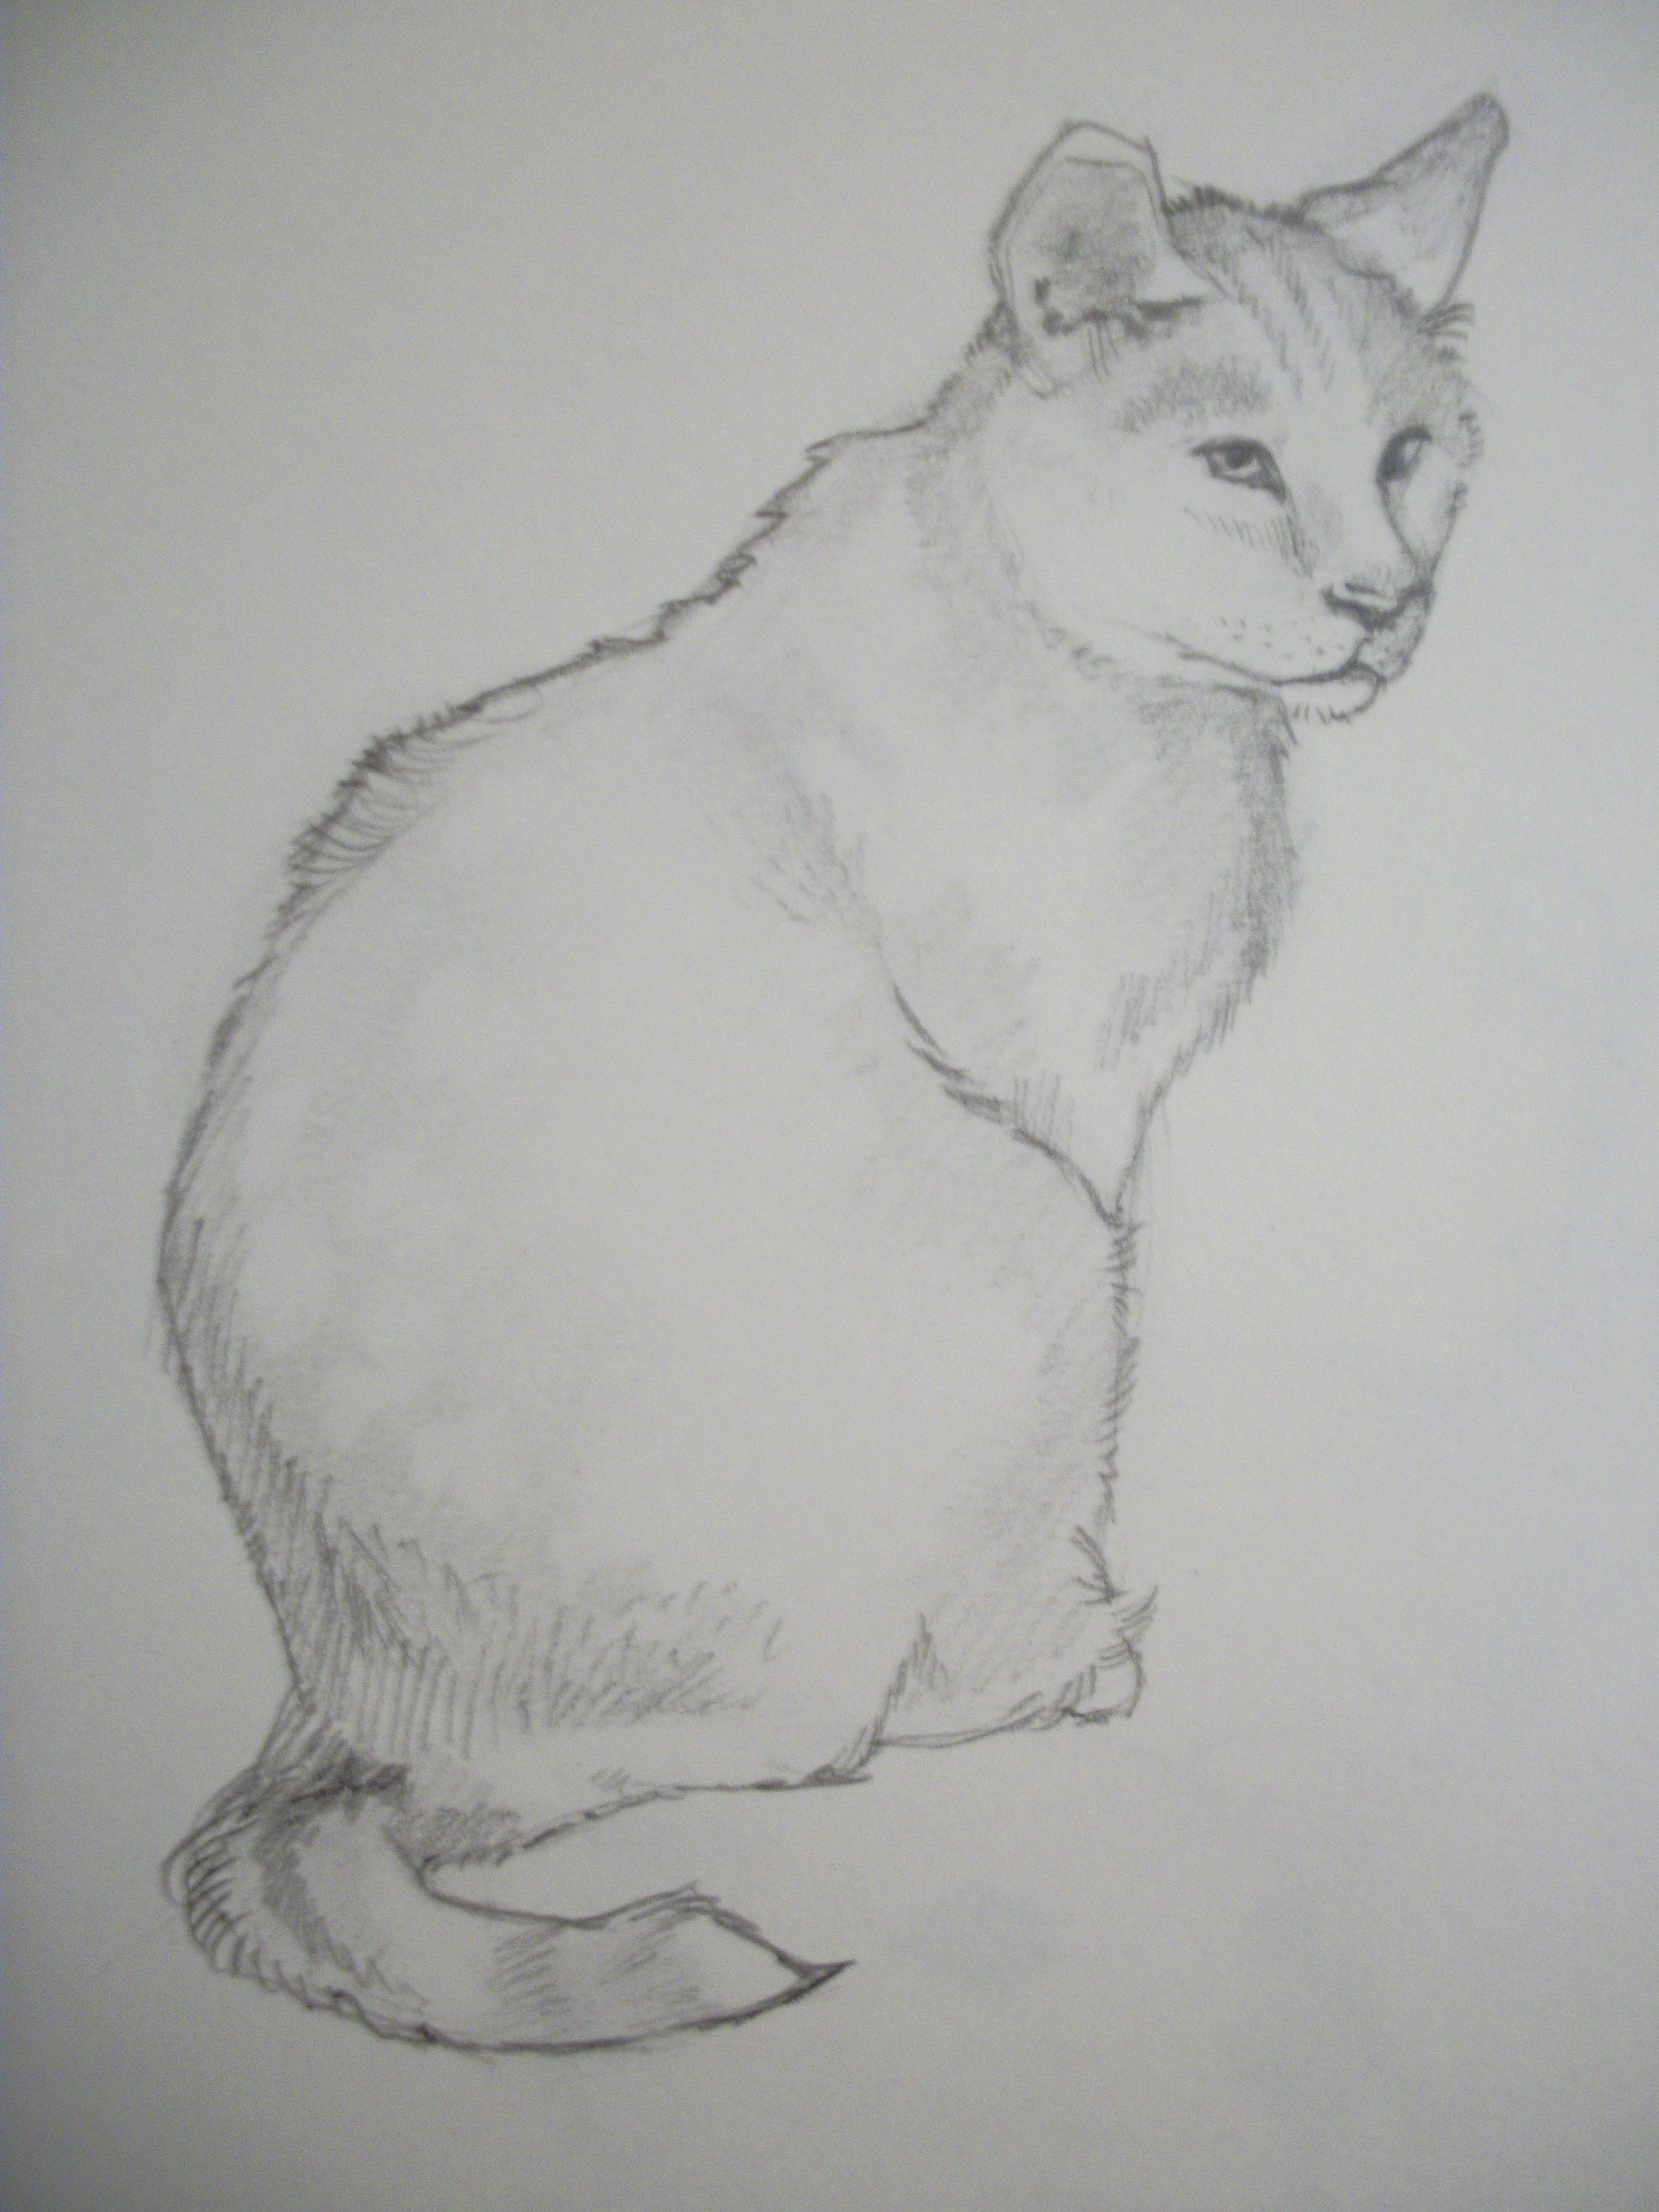 How to draw a cat in eight simple steps